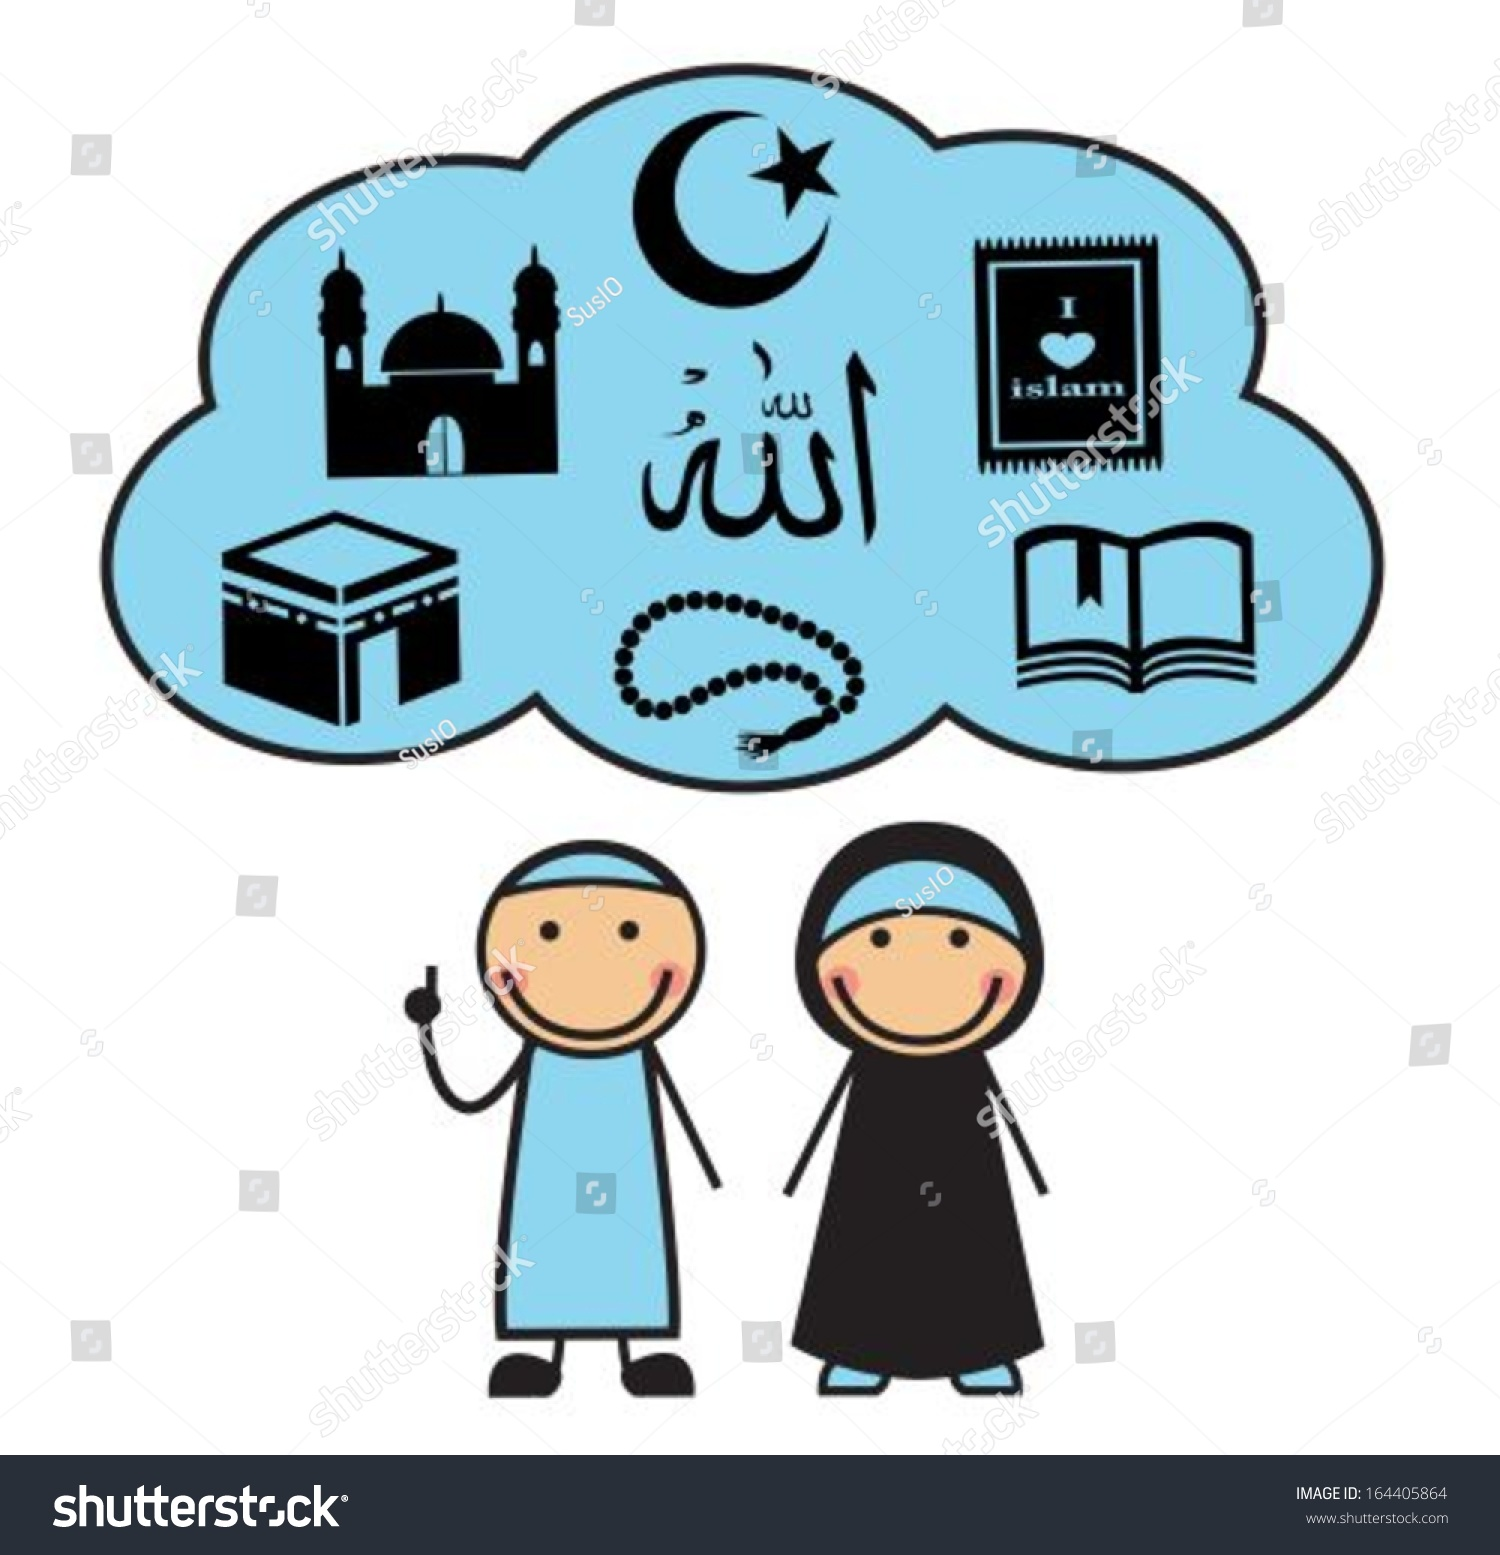 emblem muslim single men Register for free today to meet singles on our muslim dating site at eharmony, we take pride in matching you with the most compatible people in your area.